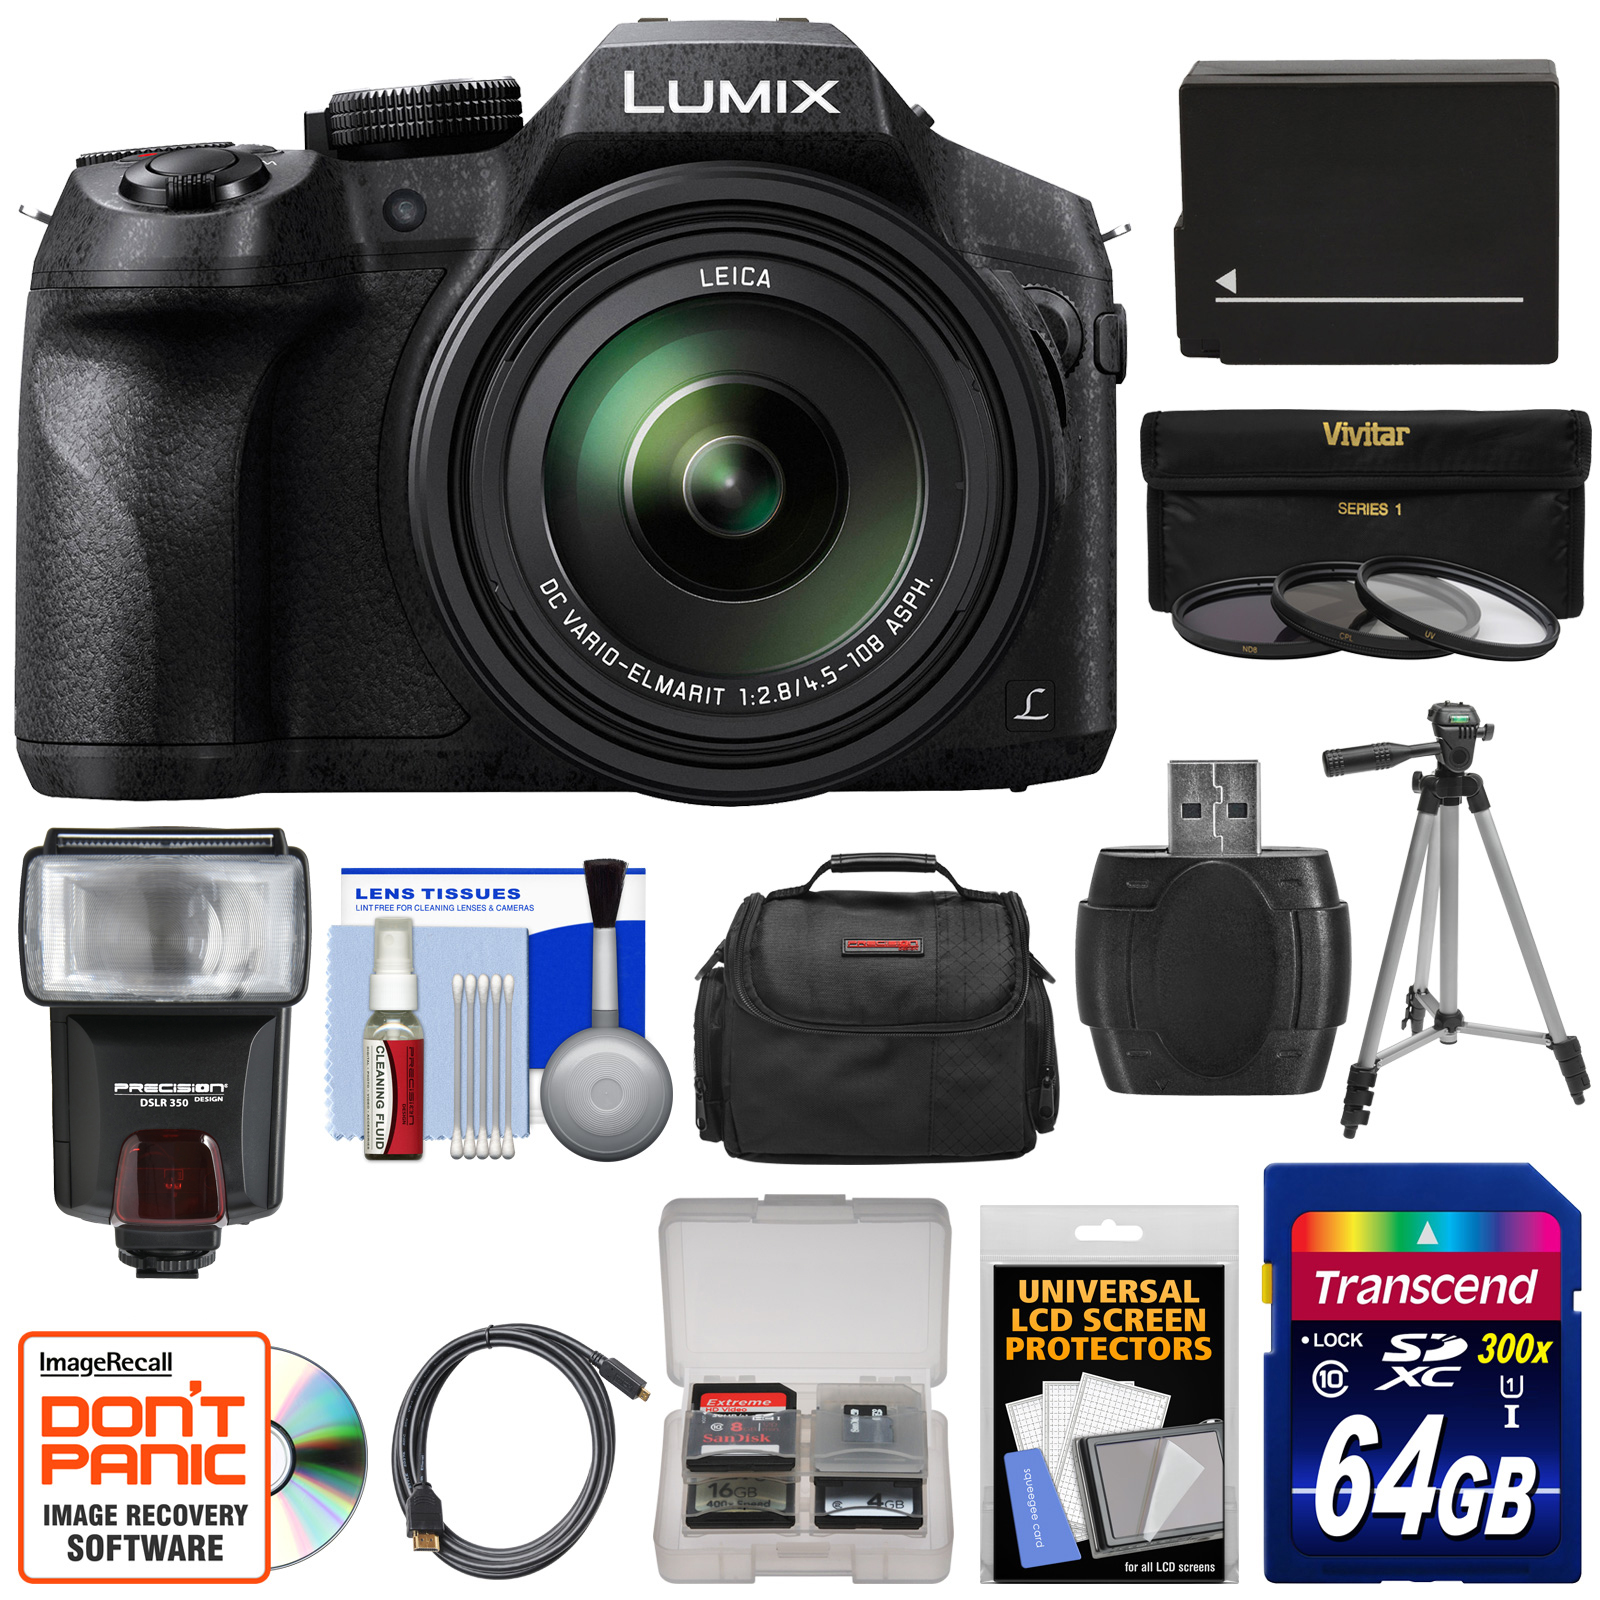 Panasonic Lumix DMC-FZ300 4K Wi-Fi Digital Camera with 64GB Card + Battery + Case + Tripod + Flash + 3 Filters + Kit